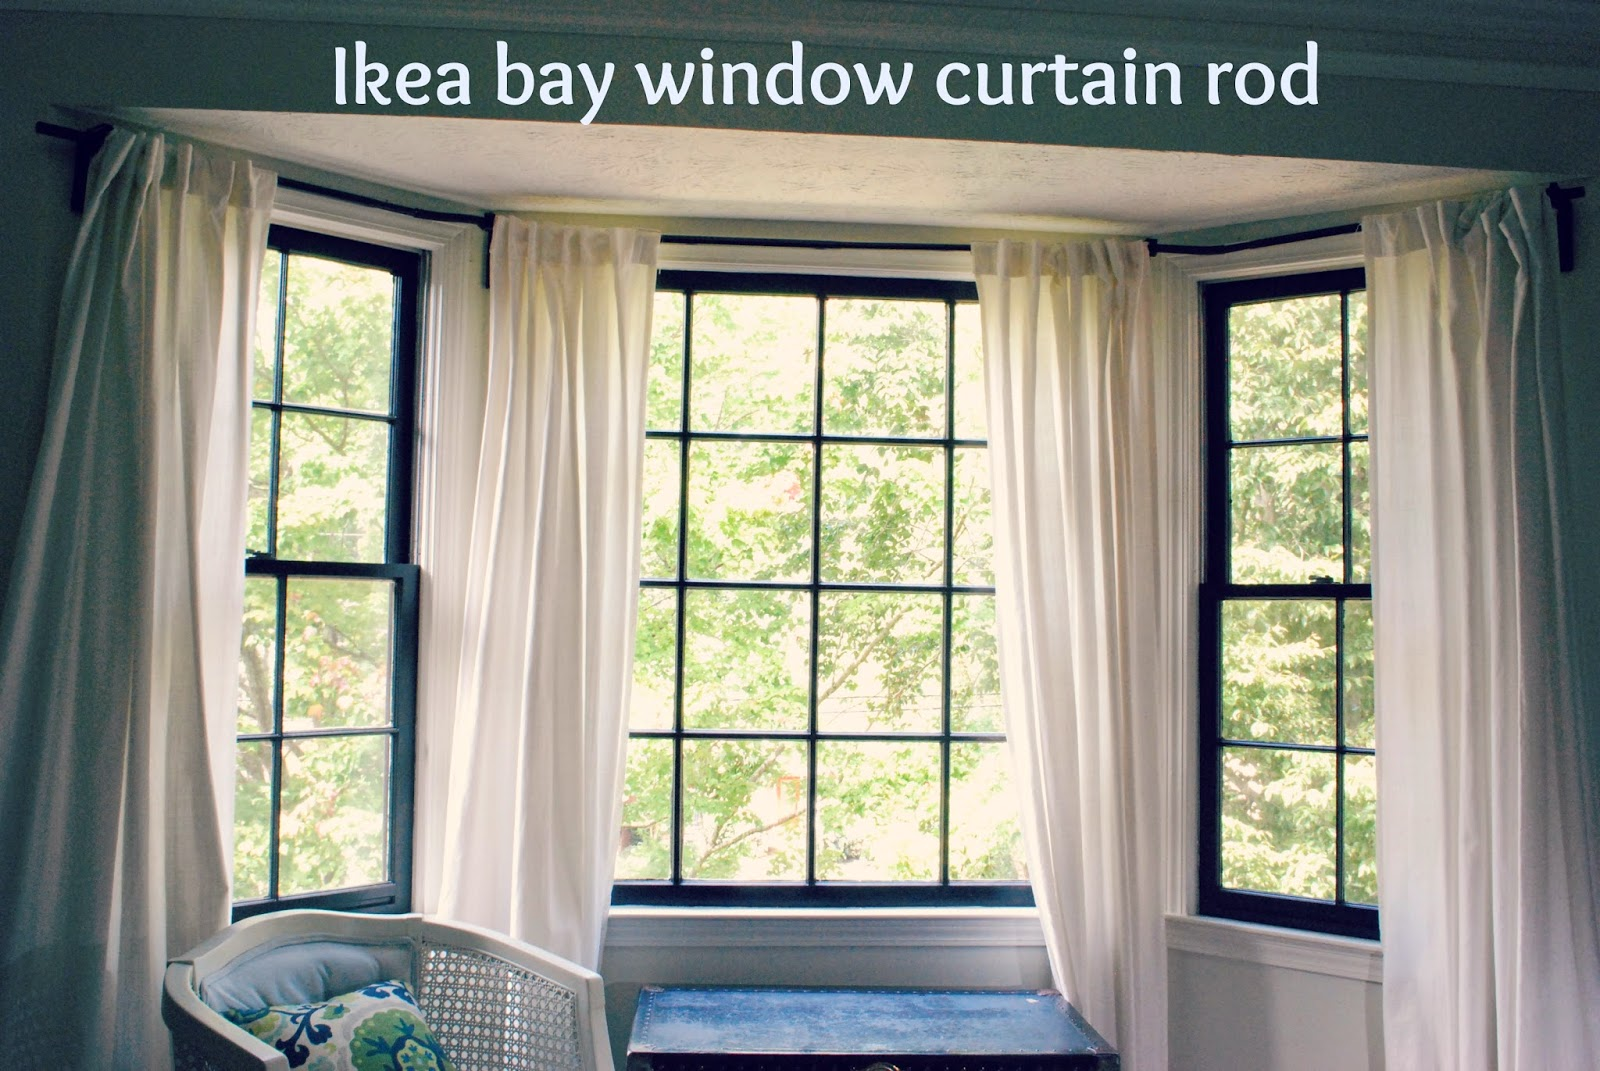 Between Blue and Yellow: Bay window curtain rod